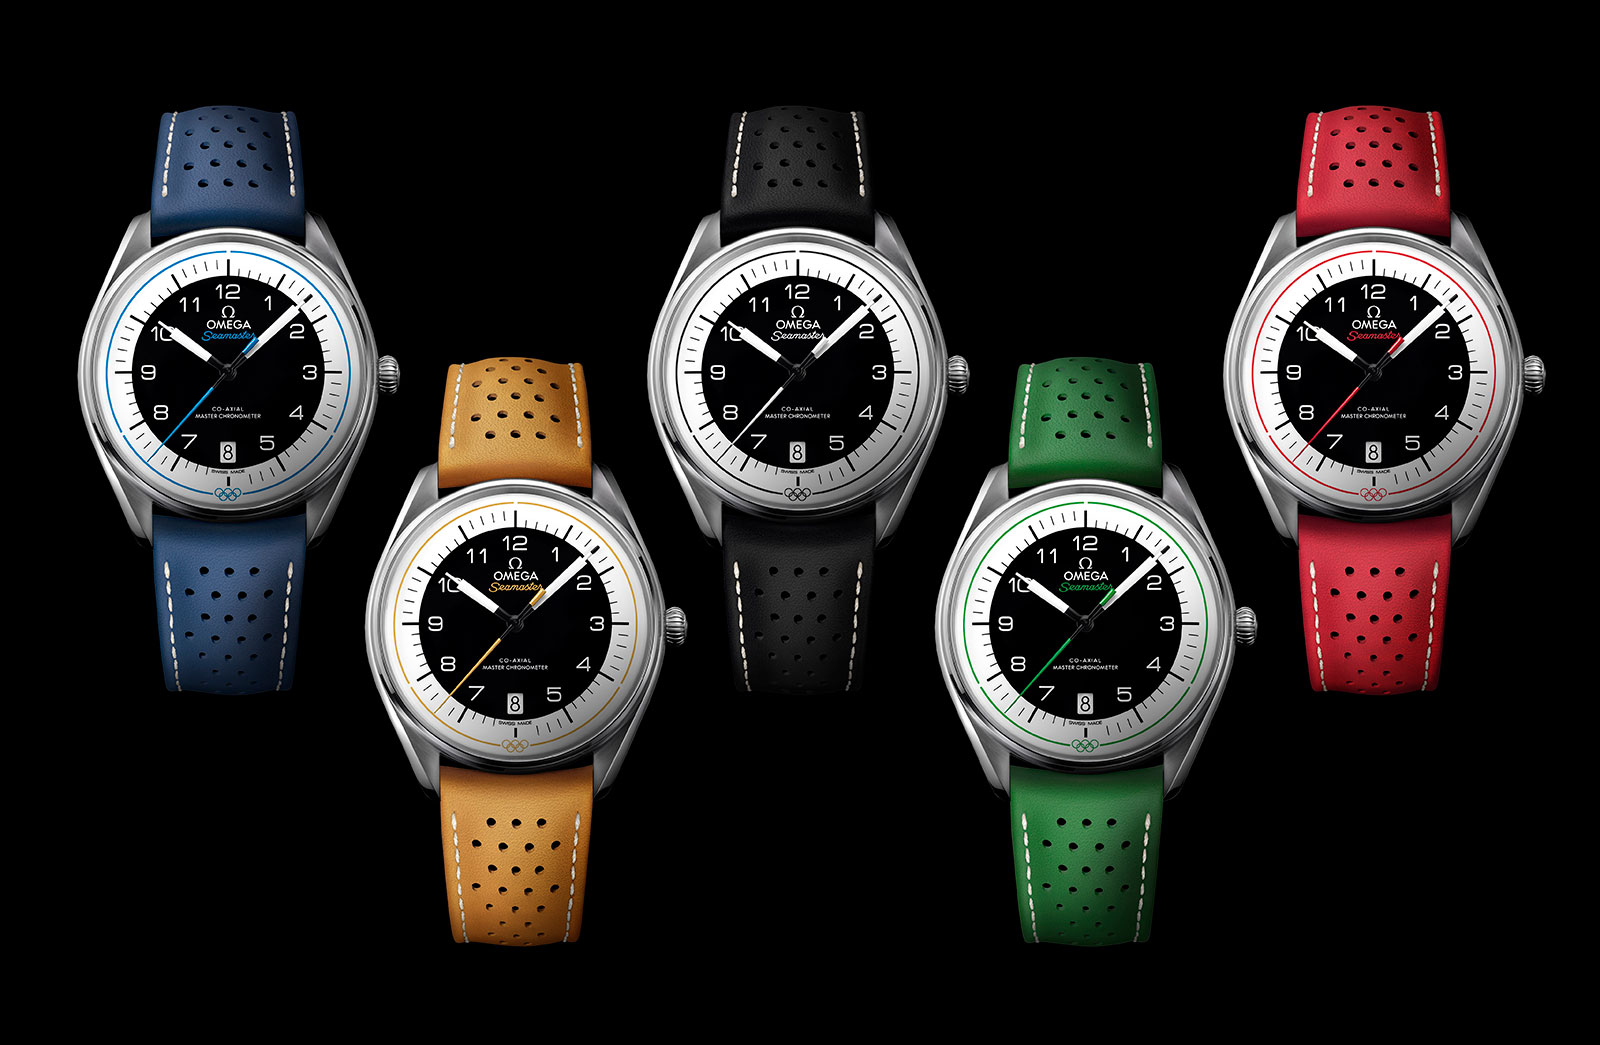 Omega Seamaster Olympic Games Collection 5